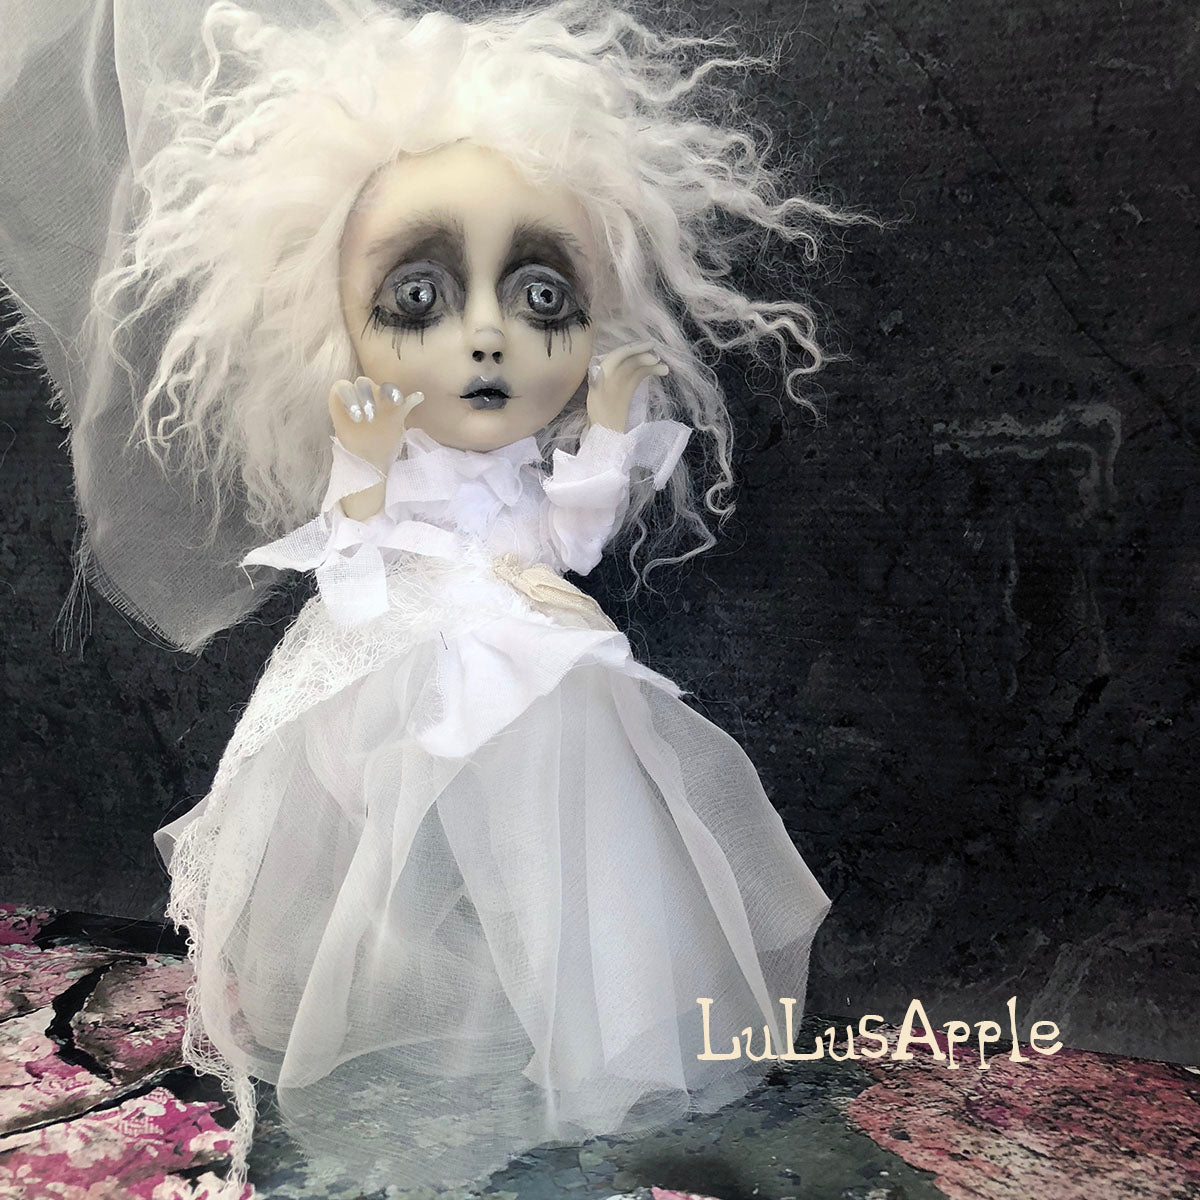 Harp Ghostly girl of Penchant Place  Mini OOAK LuLusApple Art Doll